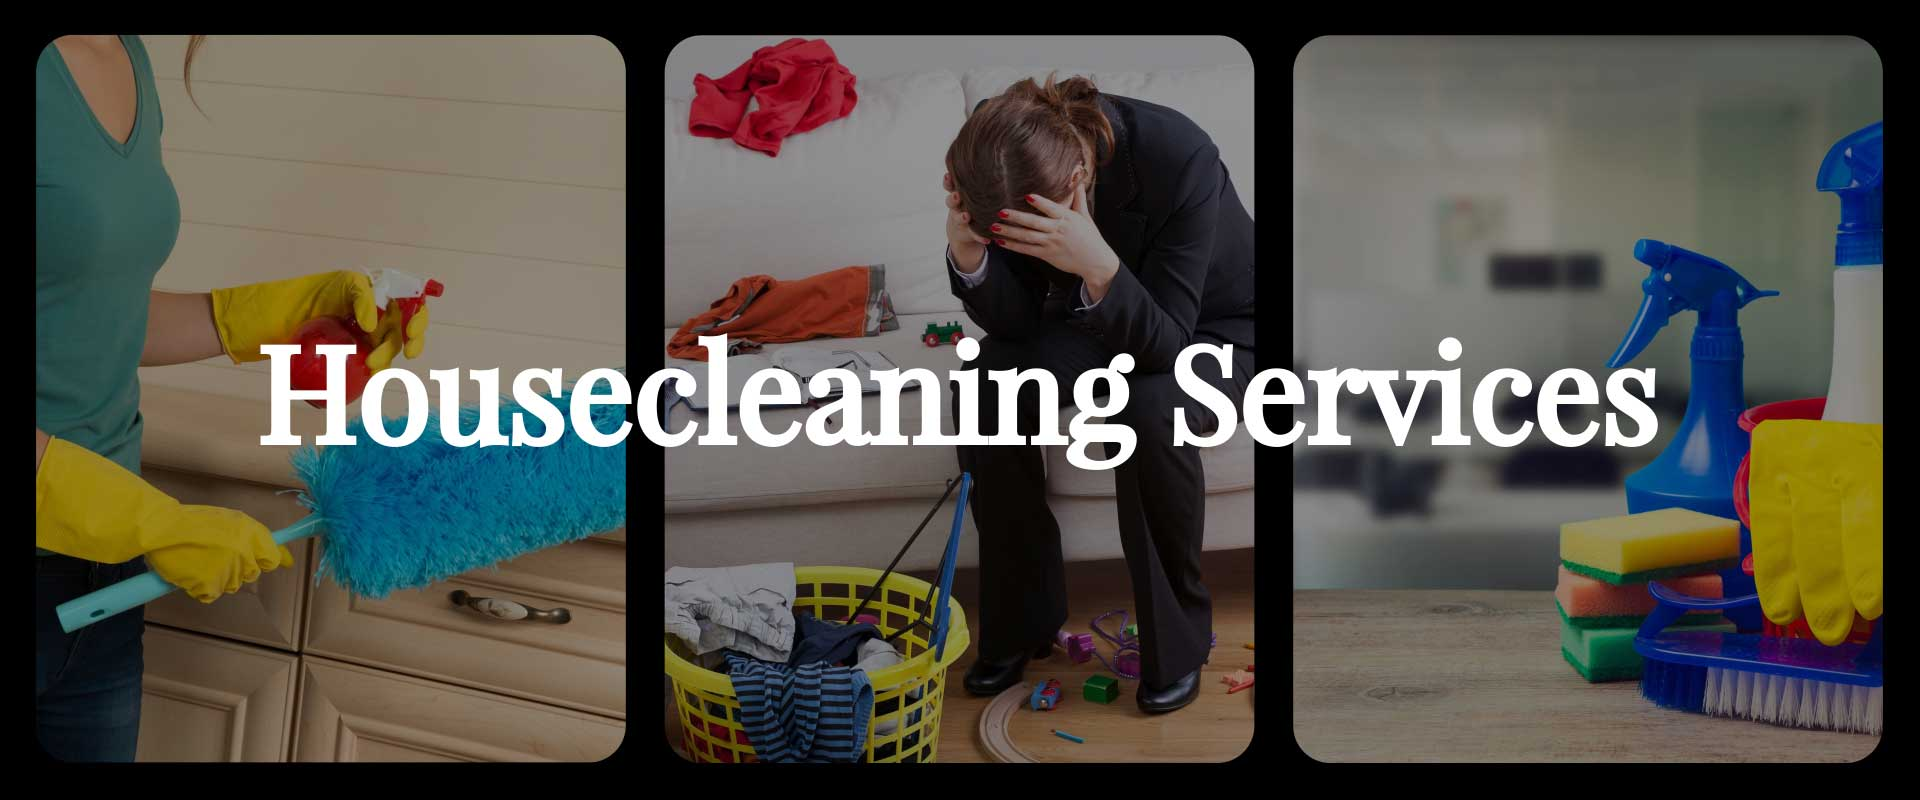 housecleaning-header